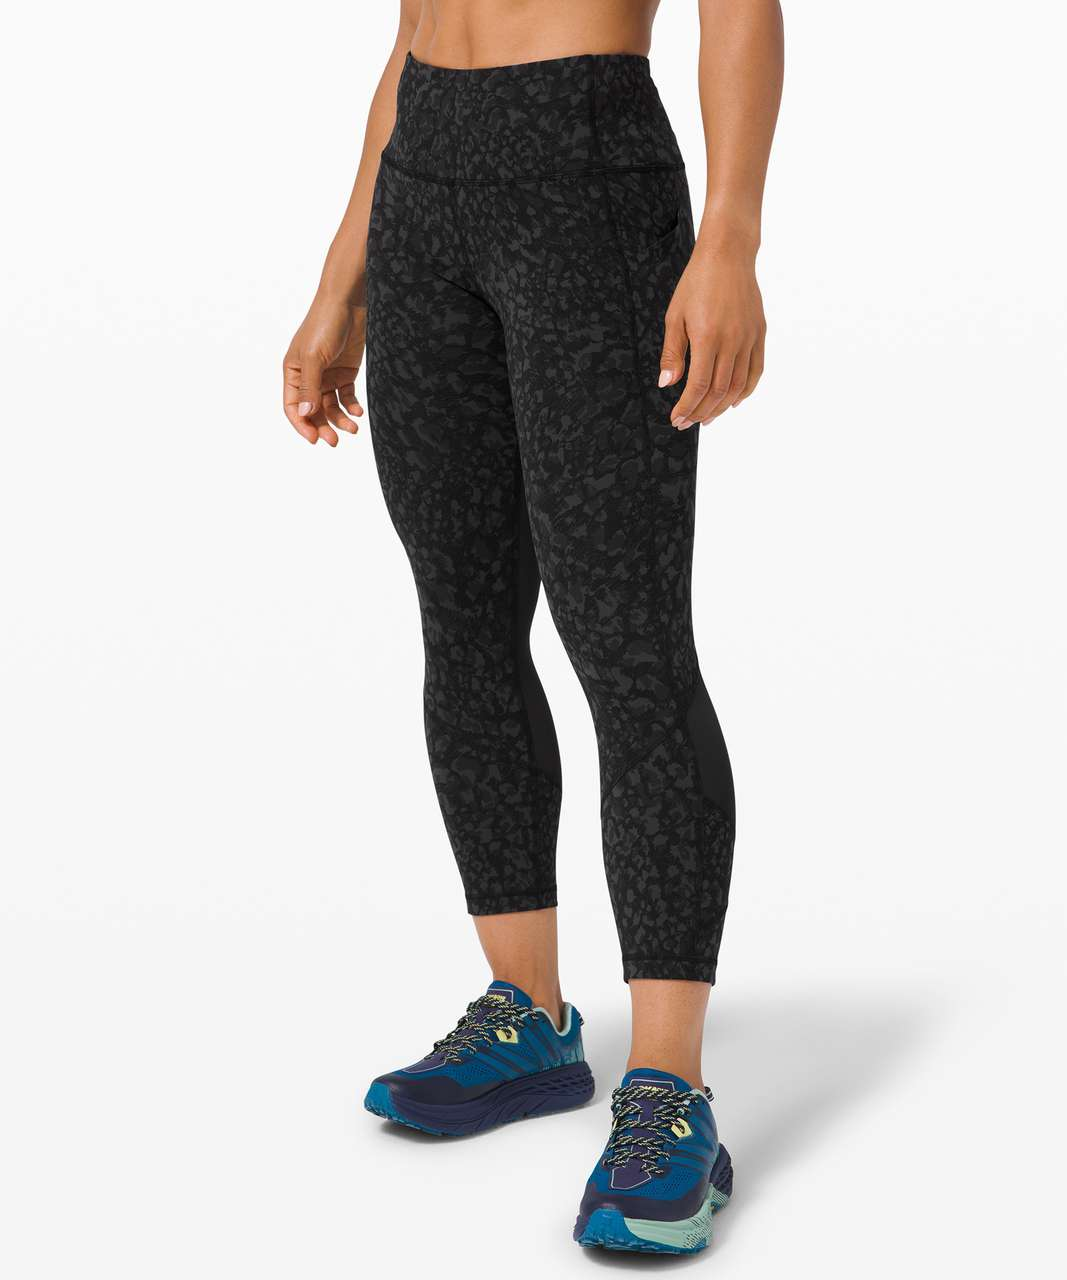 "Lululemon Pace Rival High-Rise Crop 22"" - Wild Thing Camo Deep Coal Multi / Black"